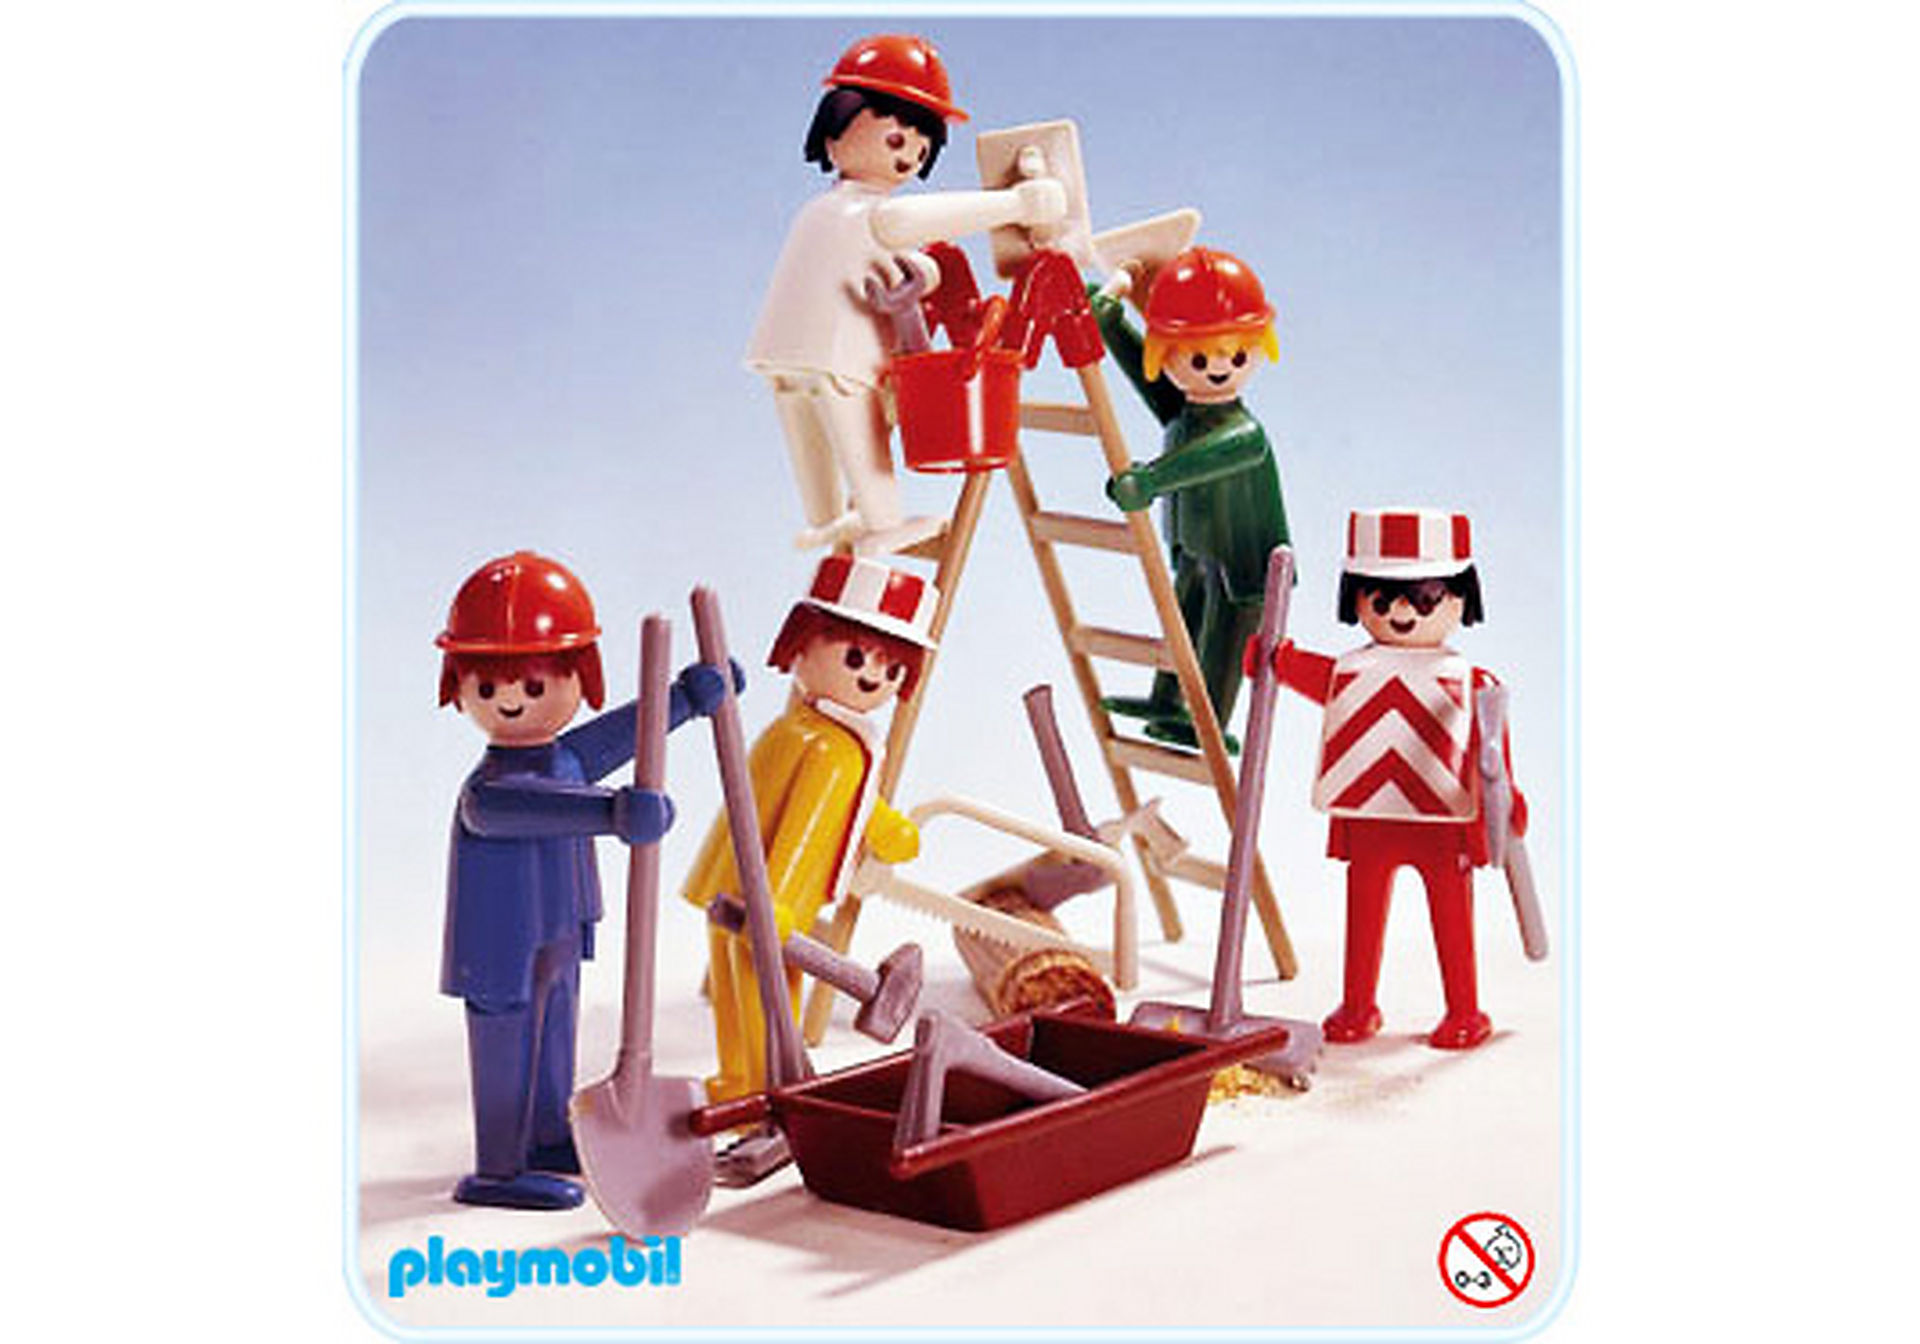 http://media.playmobil.com/i/playmobil/3201-B_product_detail/Set travaux publics